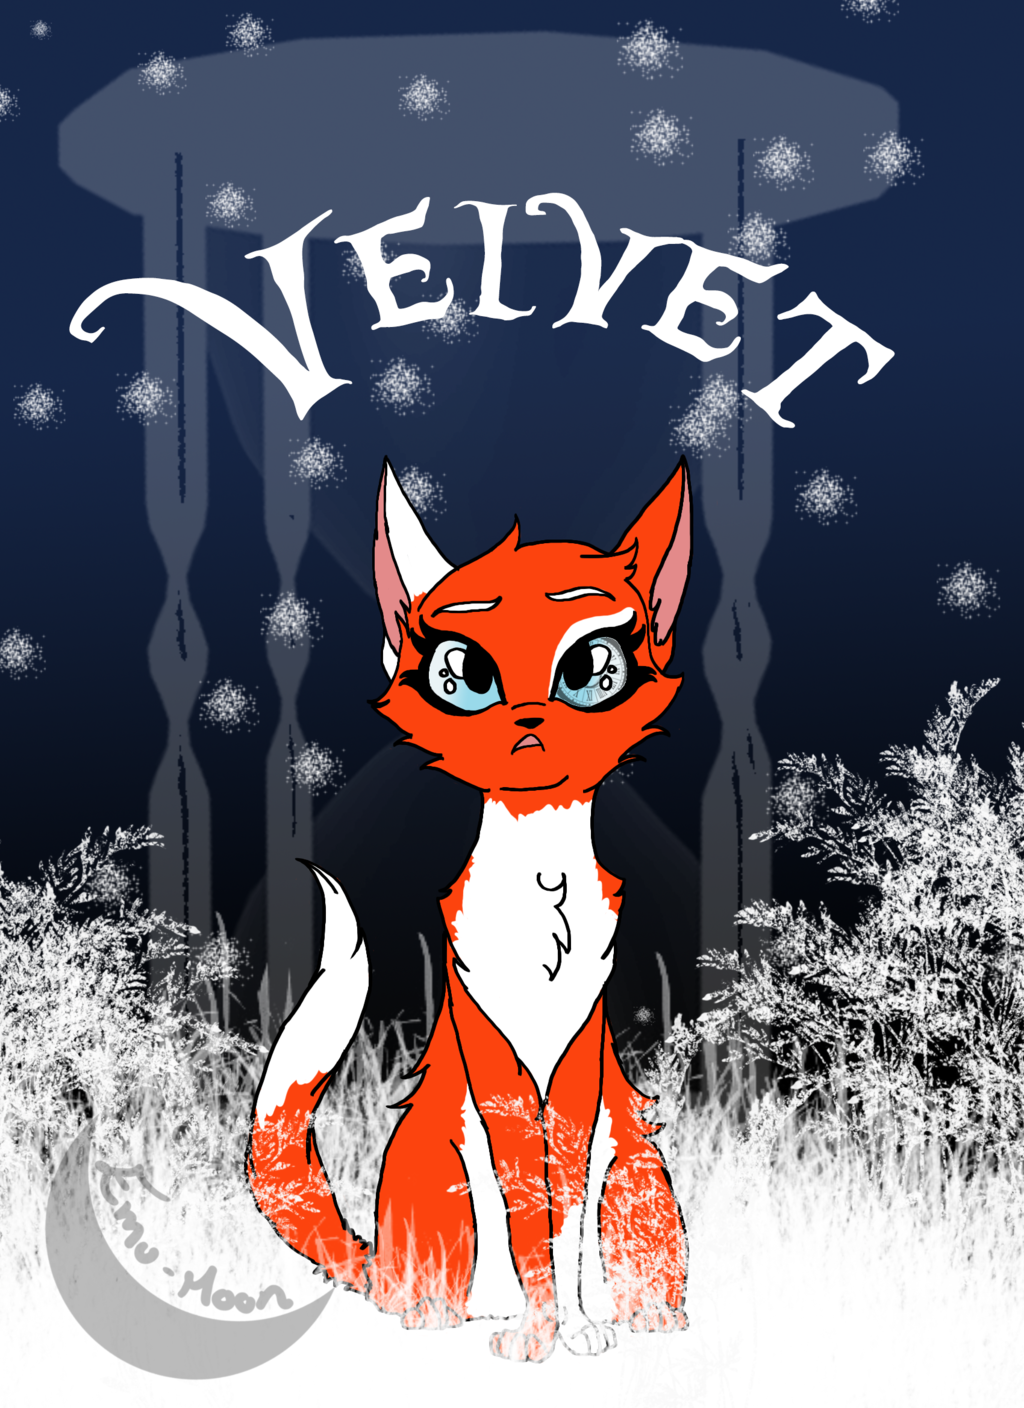 Most recent image: [Velvet] Cover